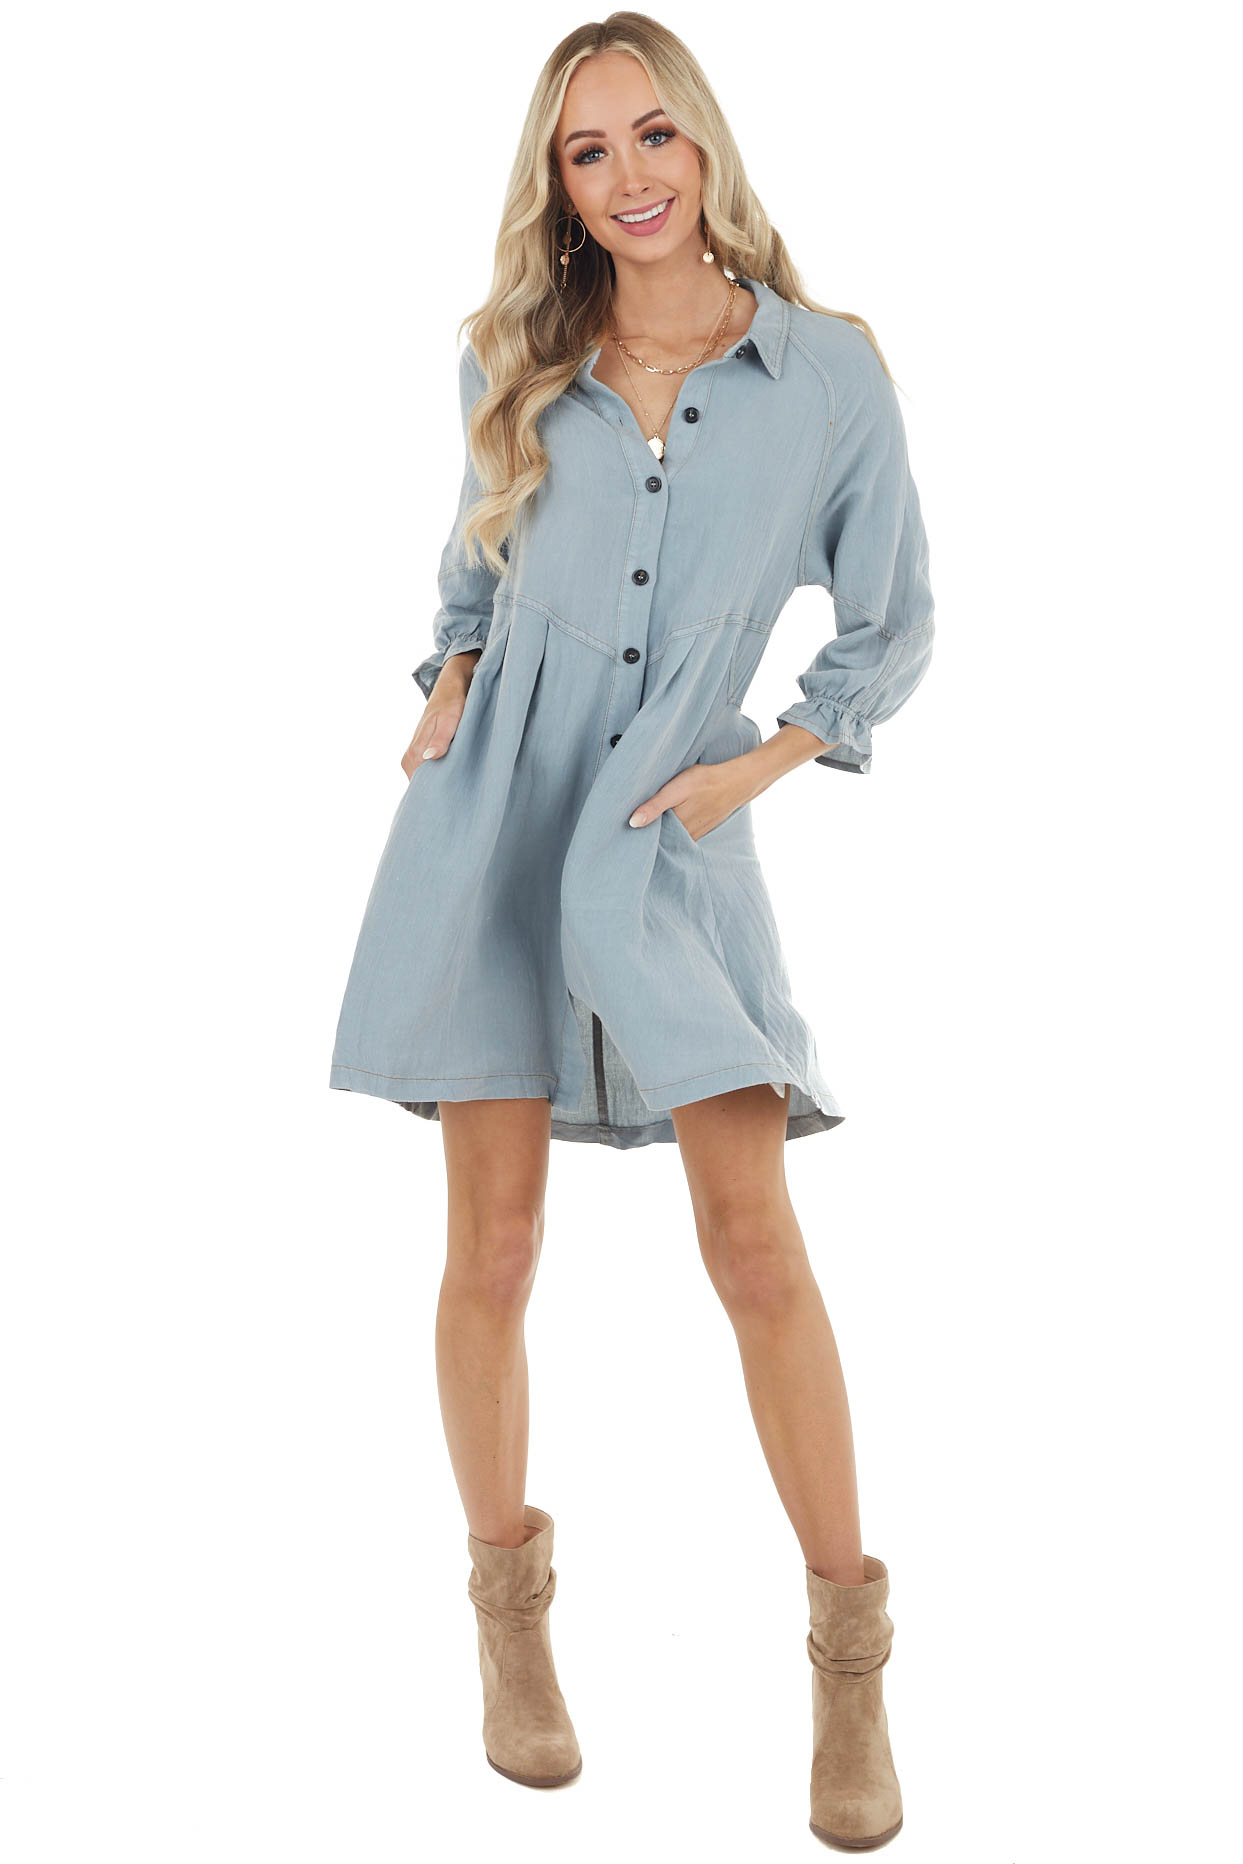 Slate Button Up Short Denim Dress with Long Sleeves